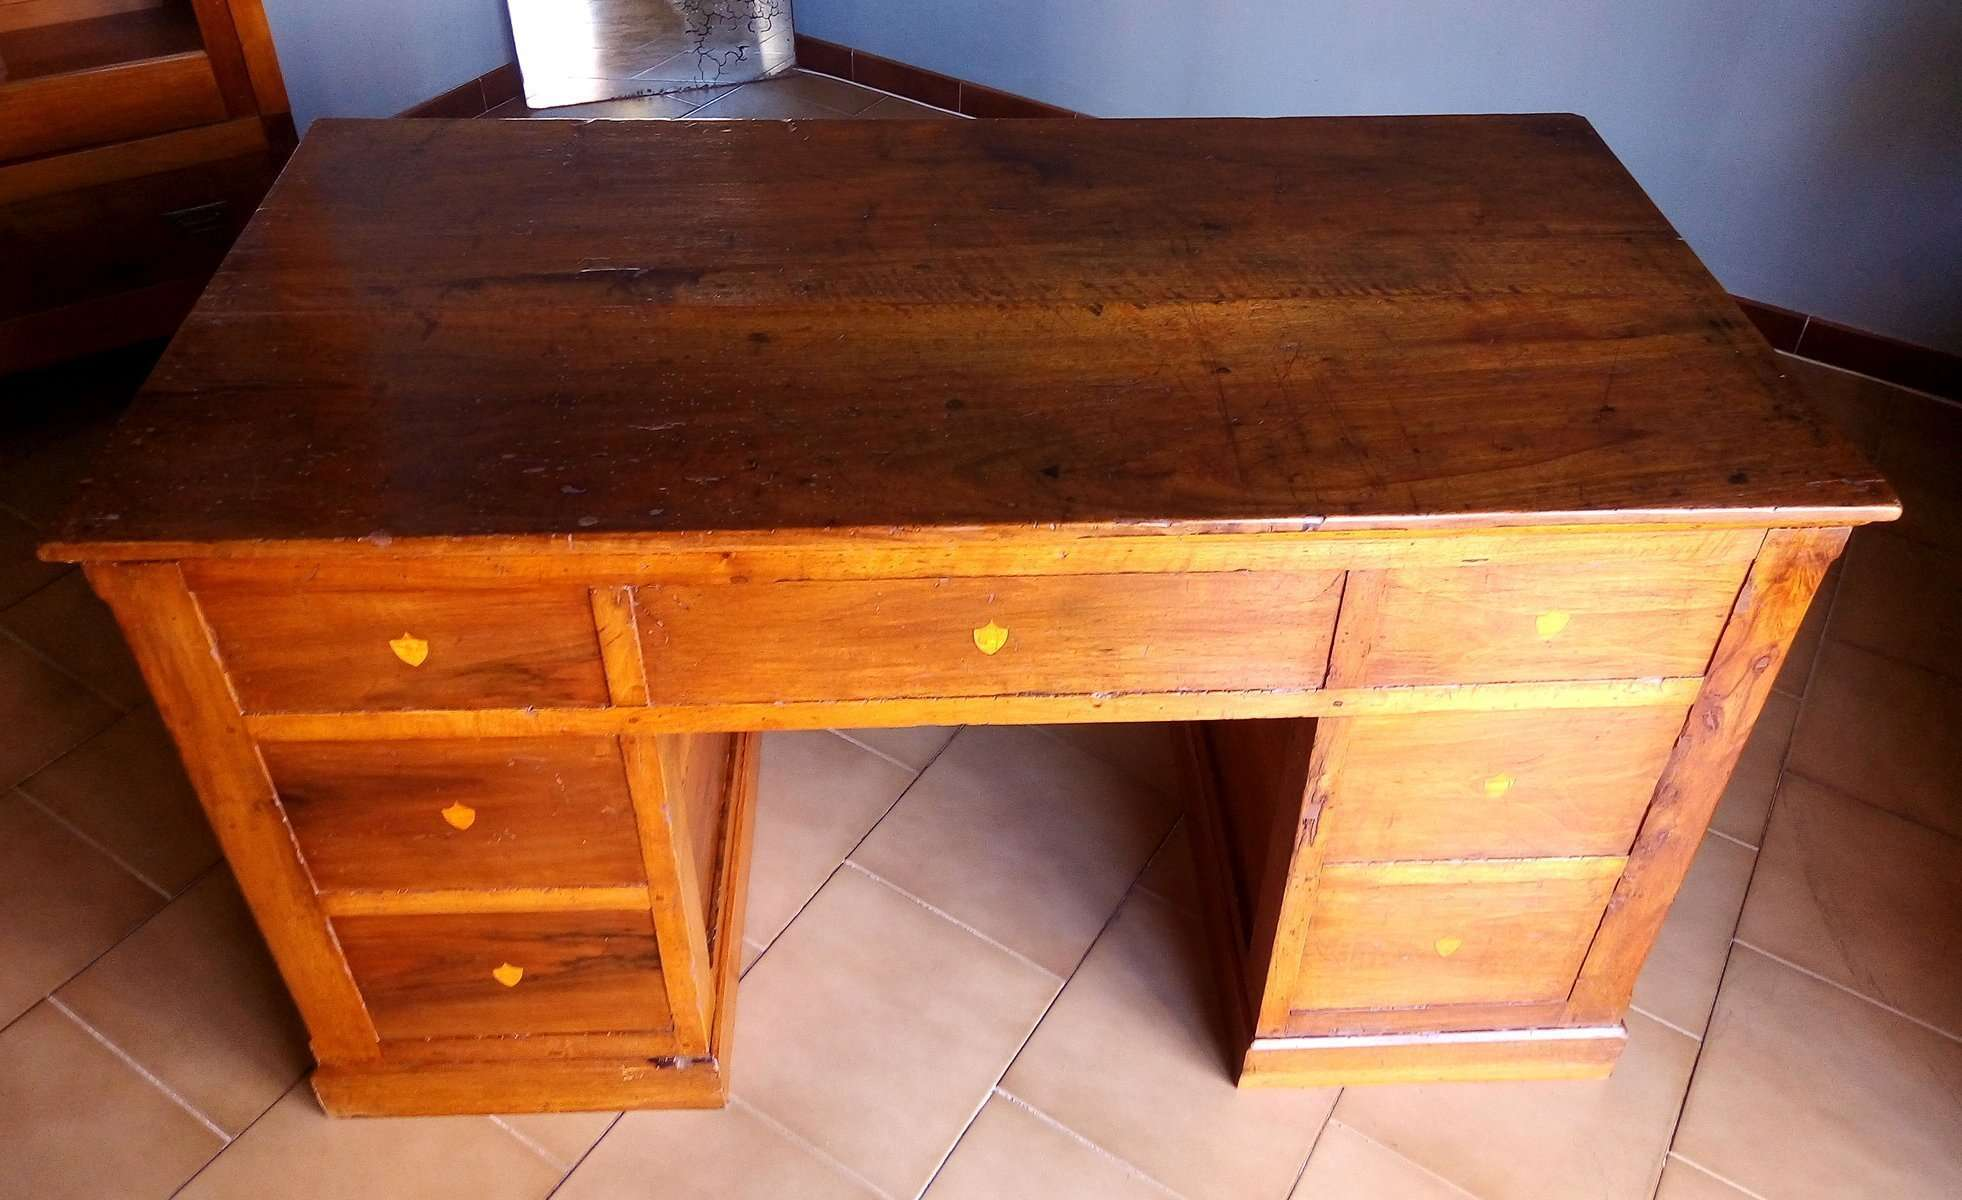 Antique Desk Restored In Walnut With Seven Drawers With Retractable  Wardrobe   RestauriRaia.com Conservation And Restoration Of Wooden Items